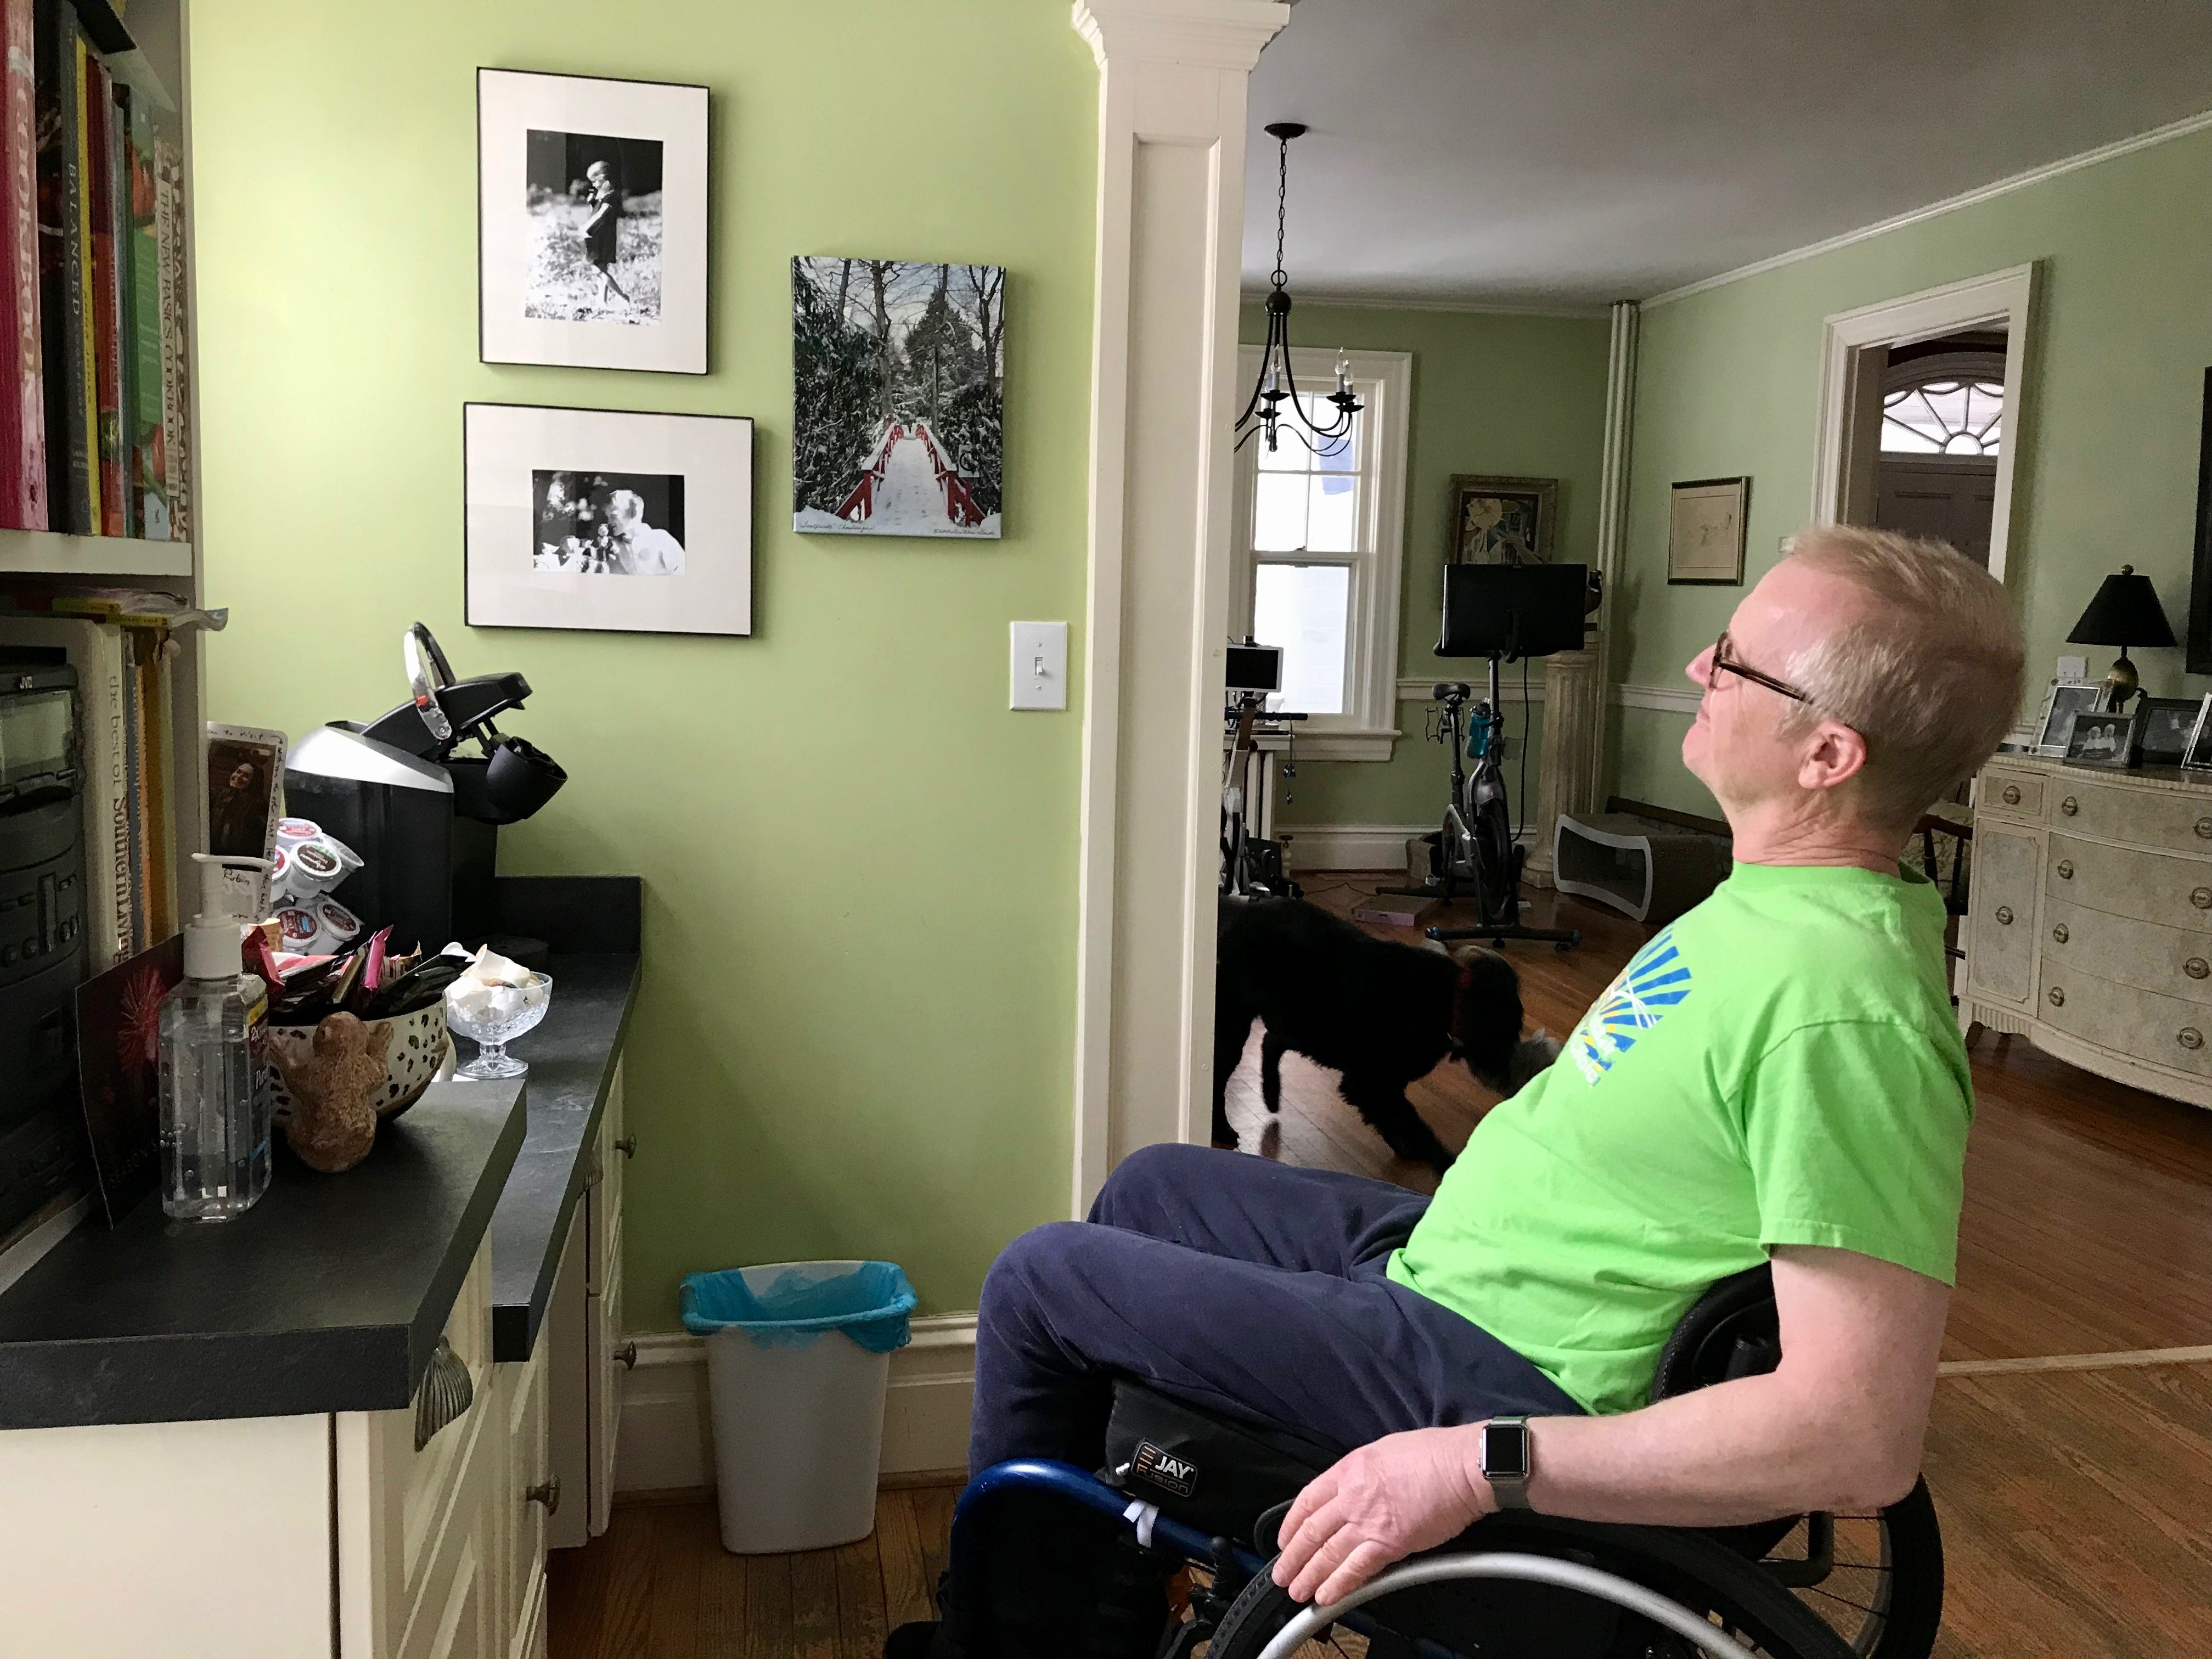 Dr. Robert Kyler in his home in Staunton, Virginia, on Friday, March 8, 2019. Kyler looks at photographs taken of his son and daughter when they were children.